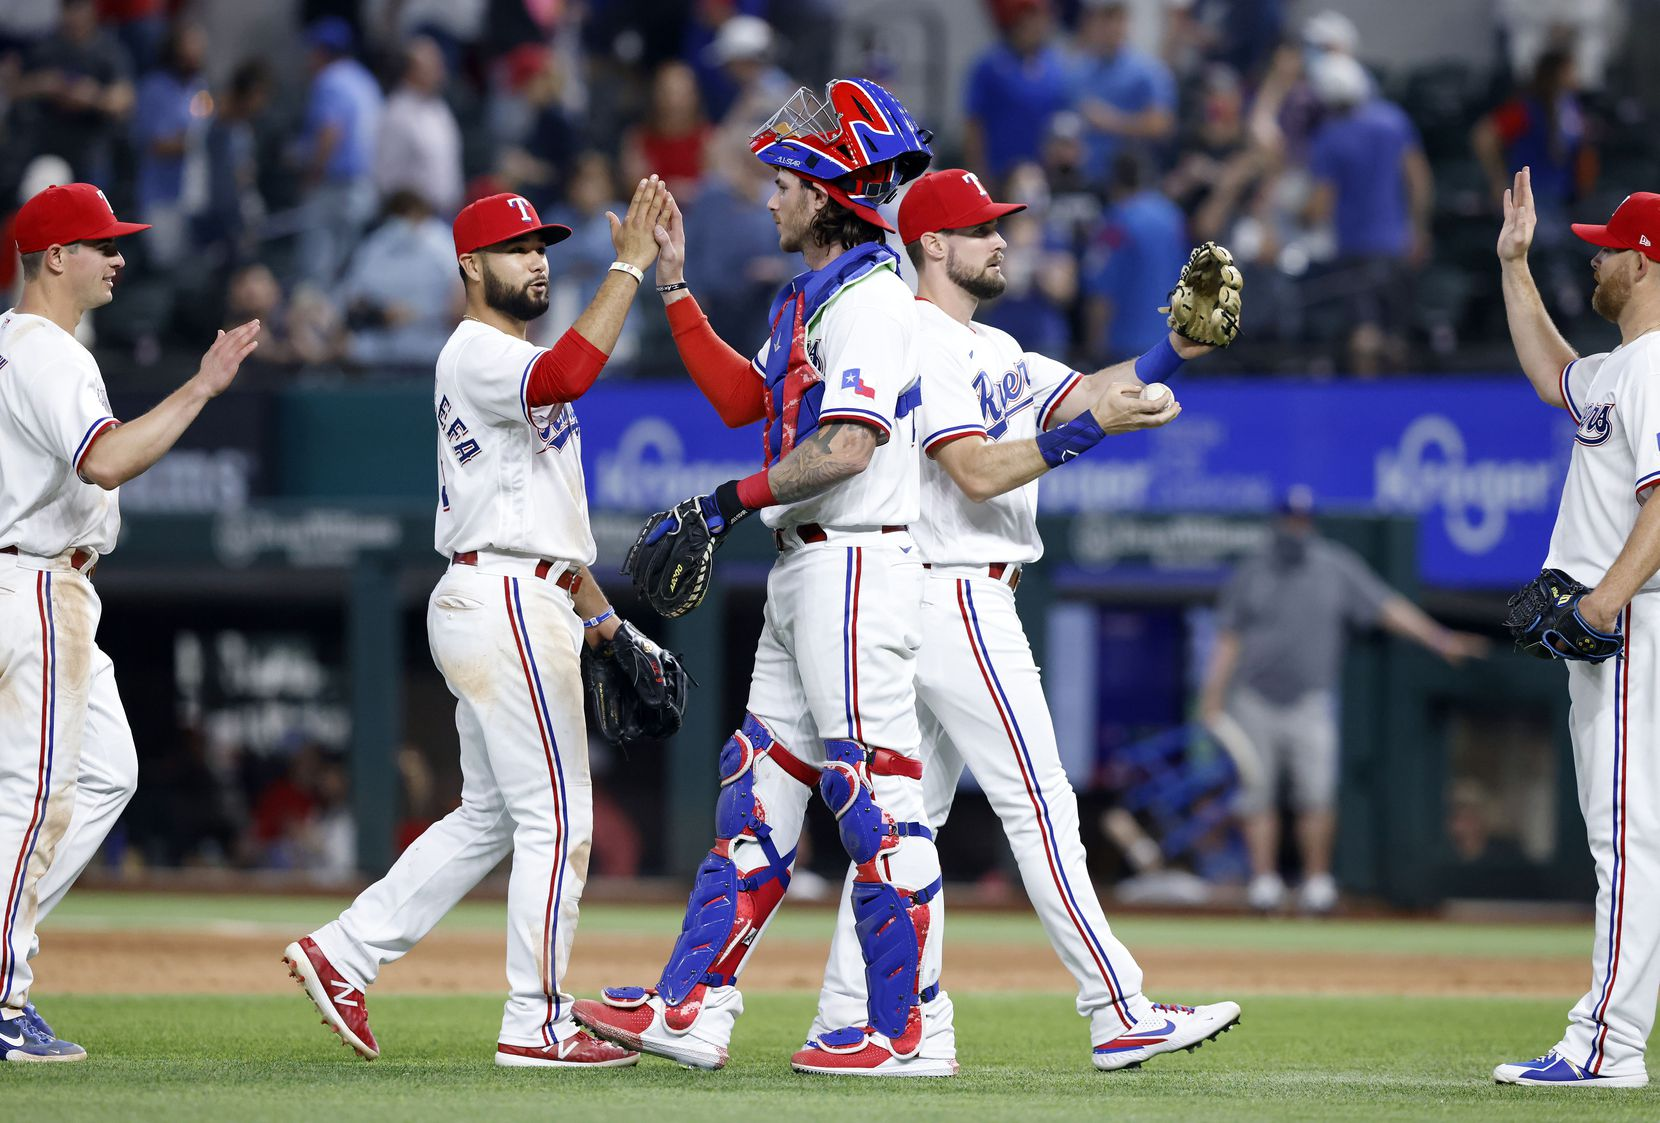 Texas Rangers catcher Jonah Heim (center) gives a high-five to teammate Isiah Kiner-Falefa after defeating the Toronto Blue Jays at Globe Life Field in Arlington, Tuesday, April 7, 2021. The Rangers won, 7-4. Heim hit his first Major League home run earlier in the game. (Tom Fox/The Dallas Morning News)